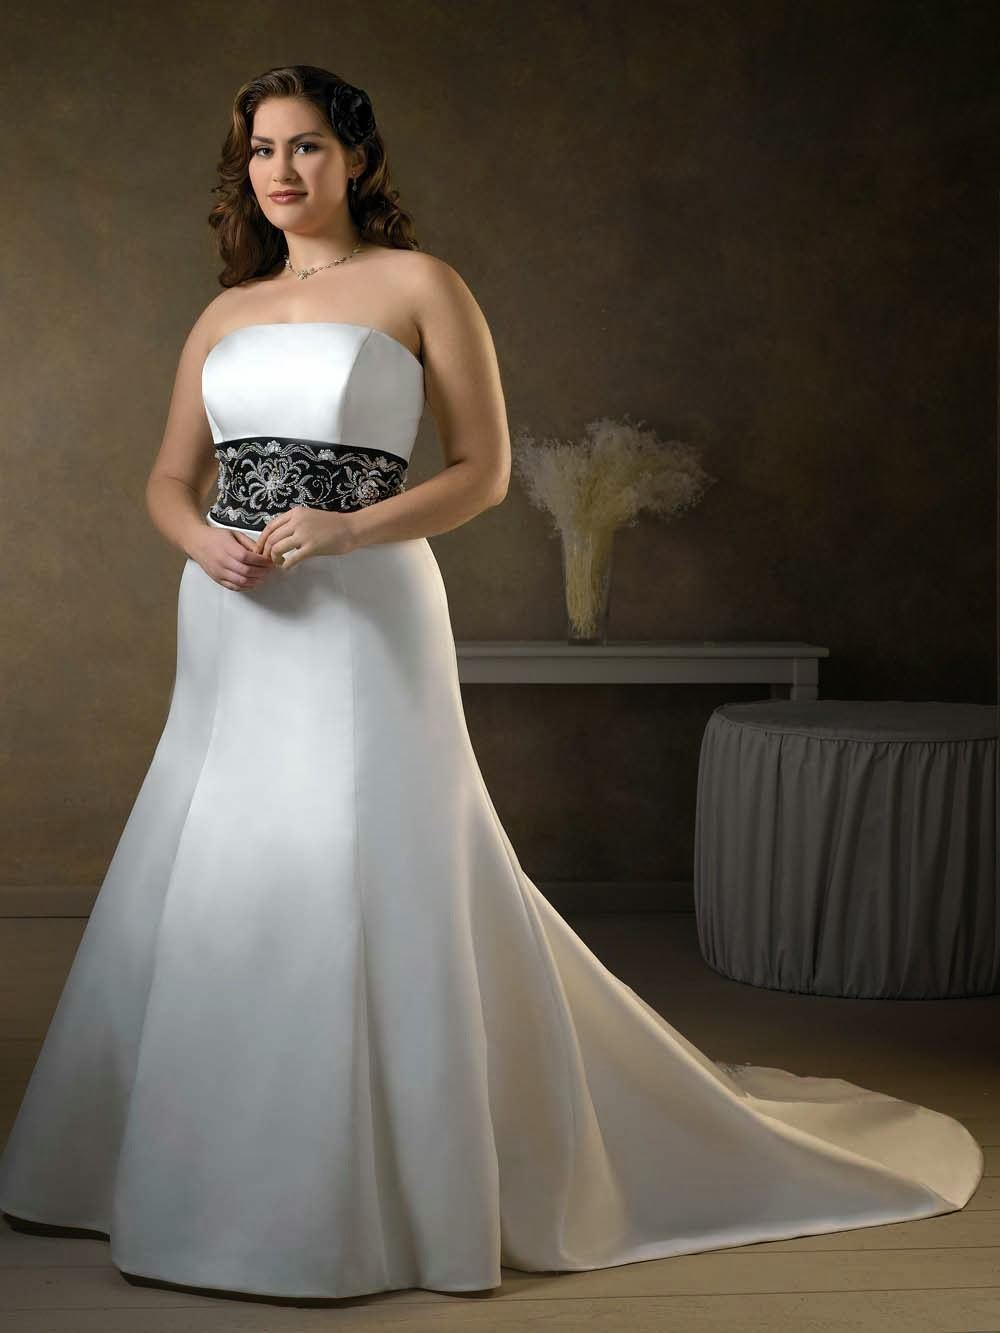 Used wedding gown get high quality plus size dress with for Wedding dress big size